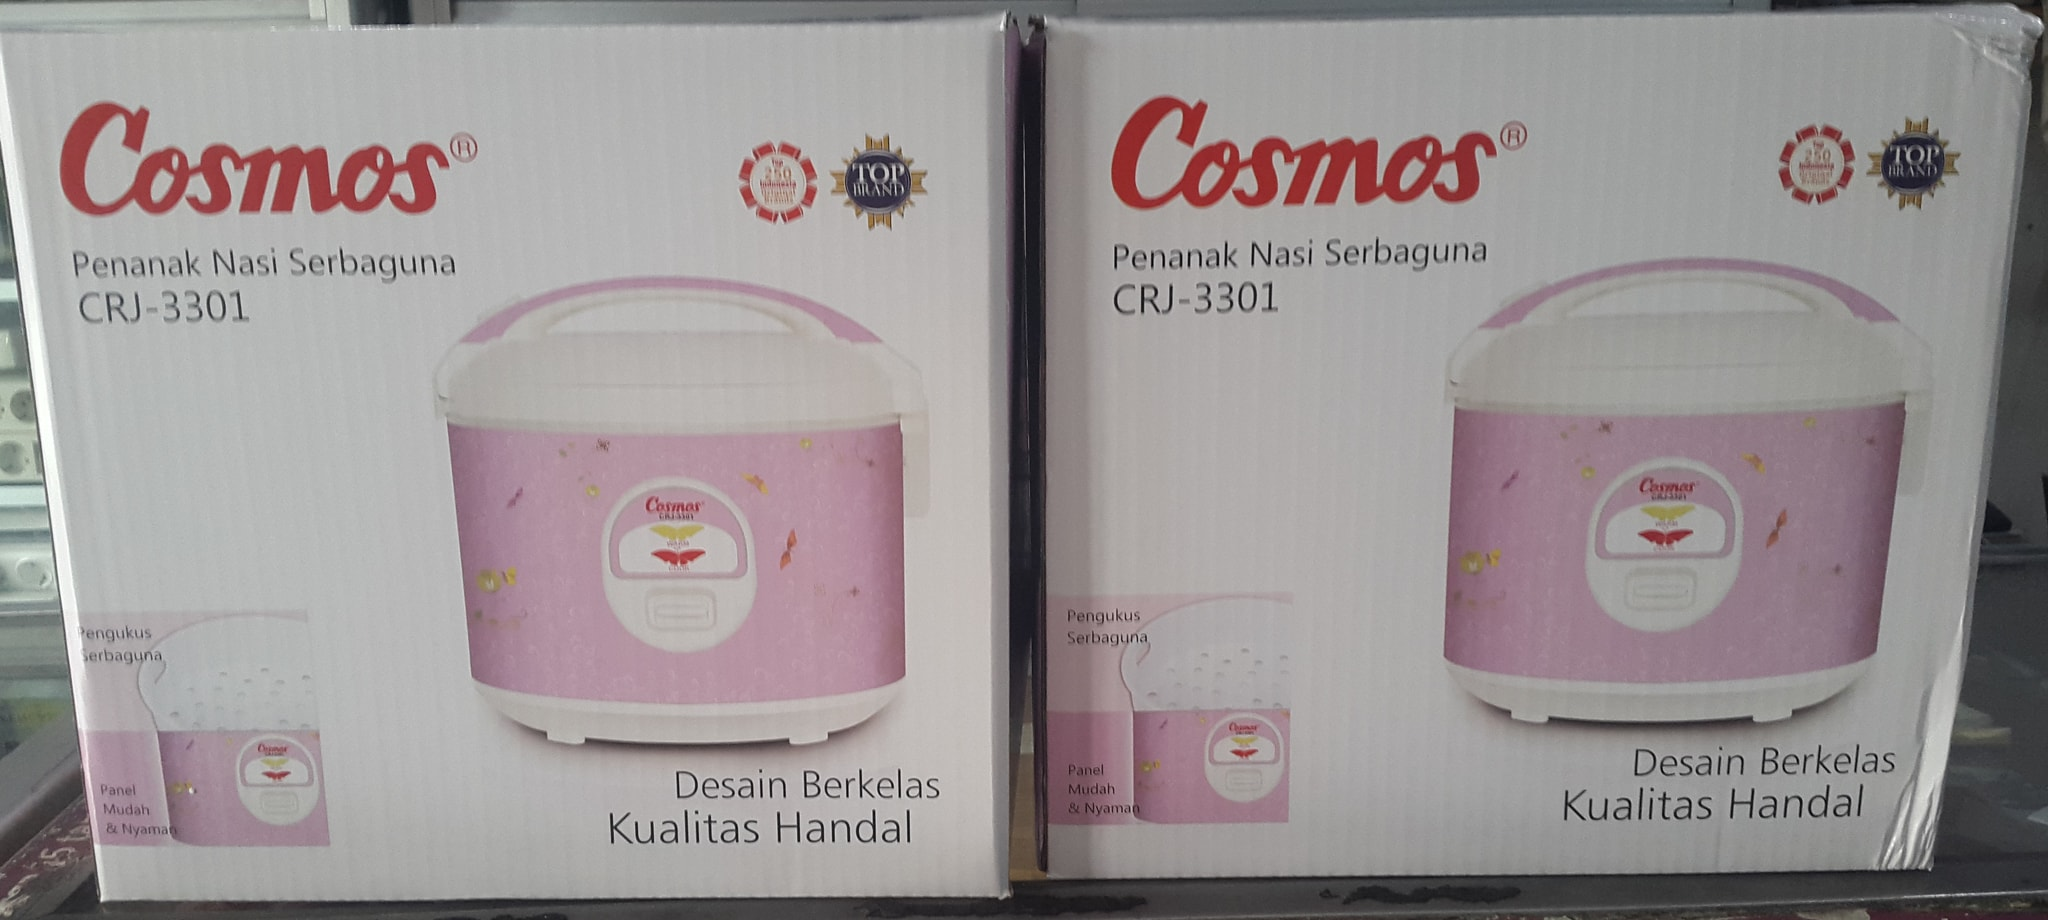 Jual Magic Com Cosmos Crj 3301 Cr Kosambi Tokopedia Rice Cooker